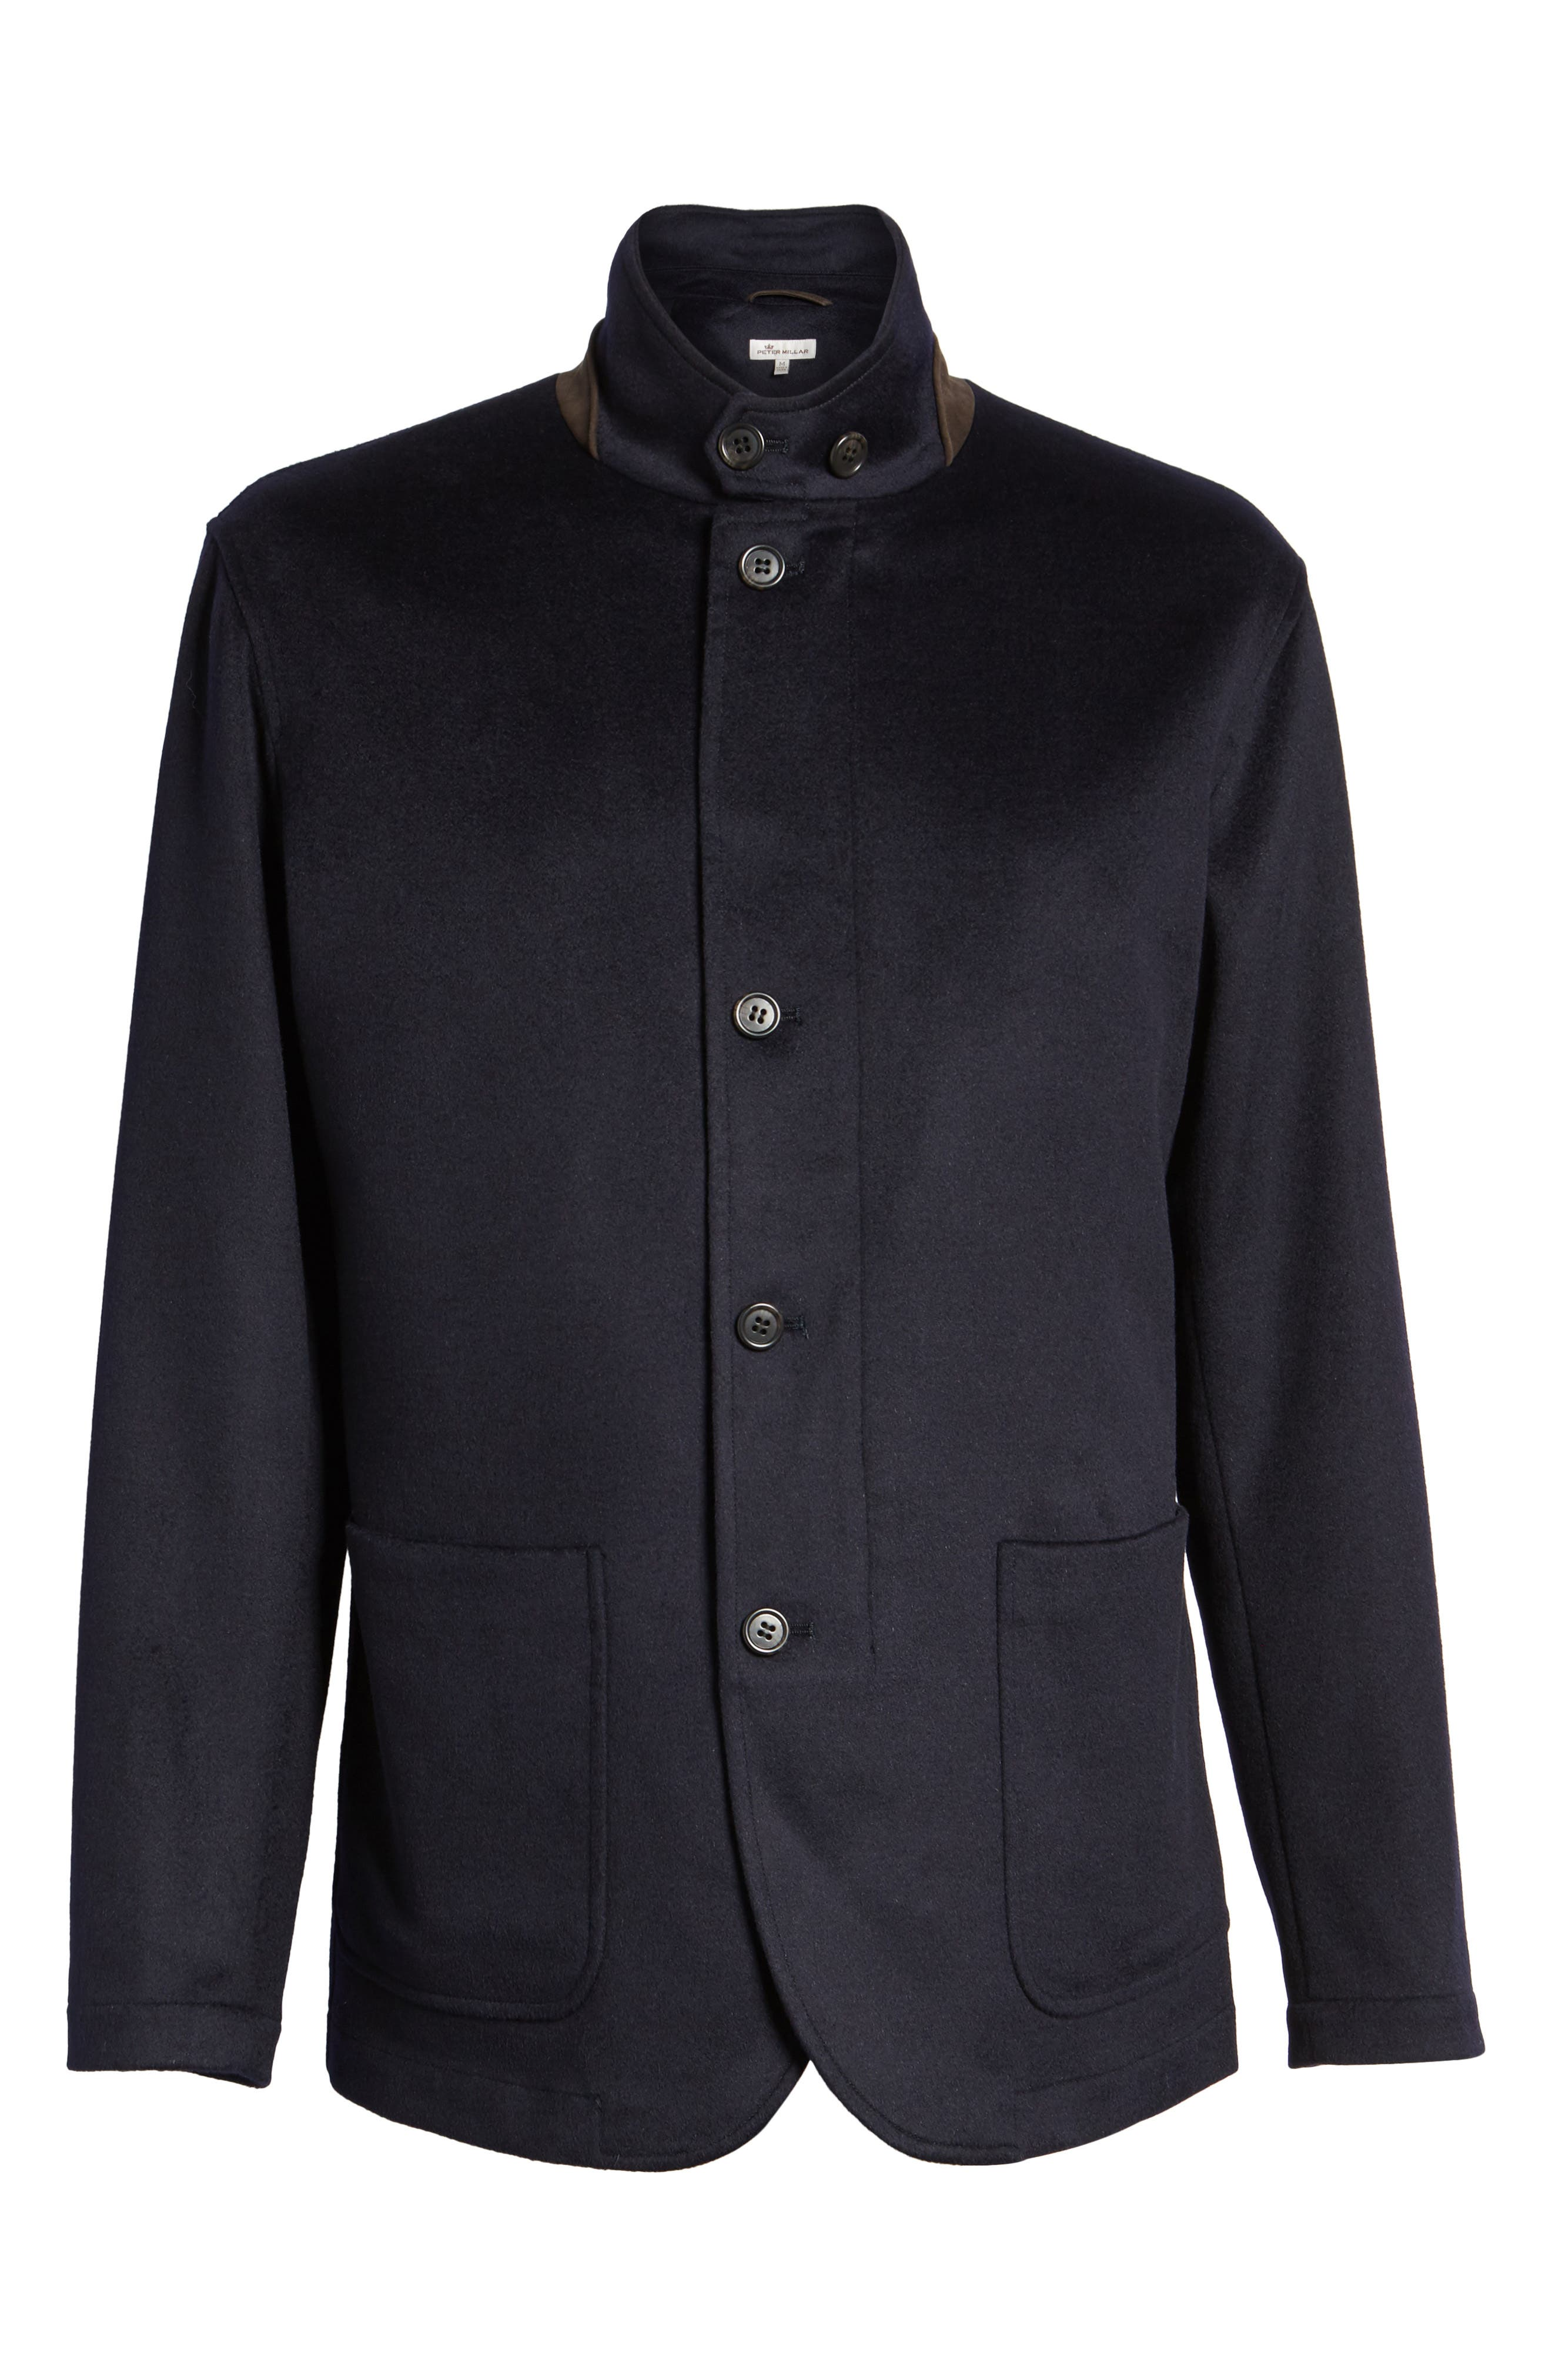 Crown Wool & Cashmere Jacket,                             Alternate thumbnail 6, color,                             Navy